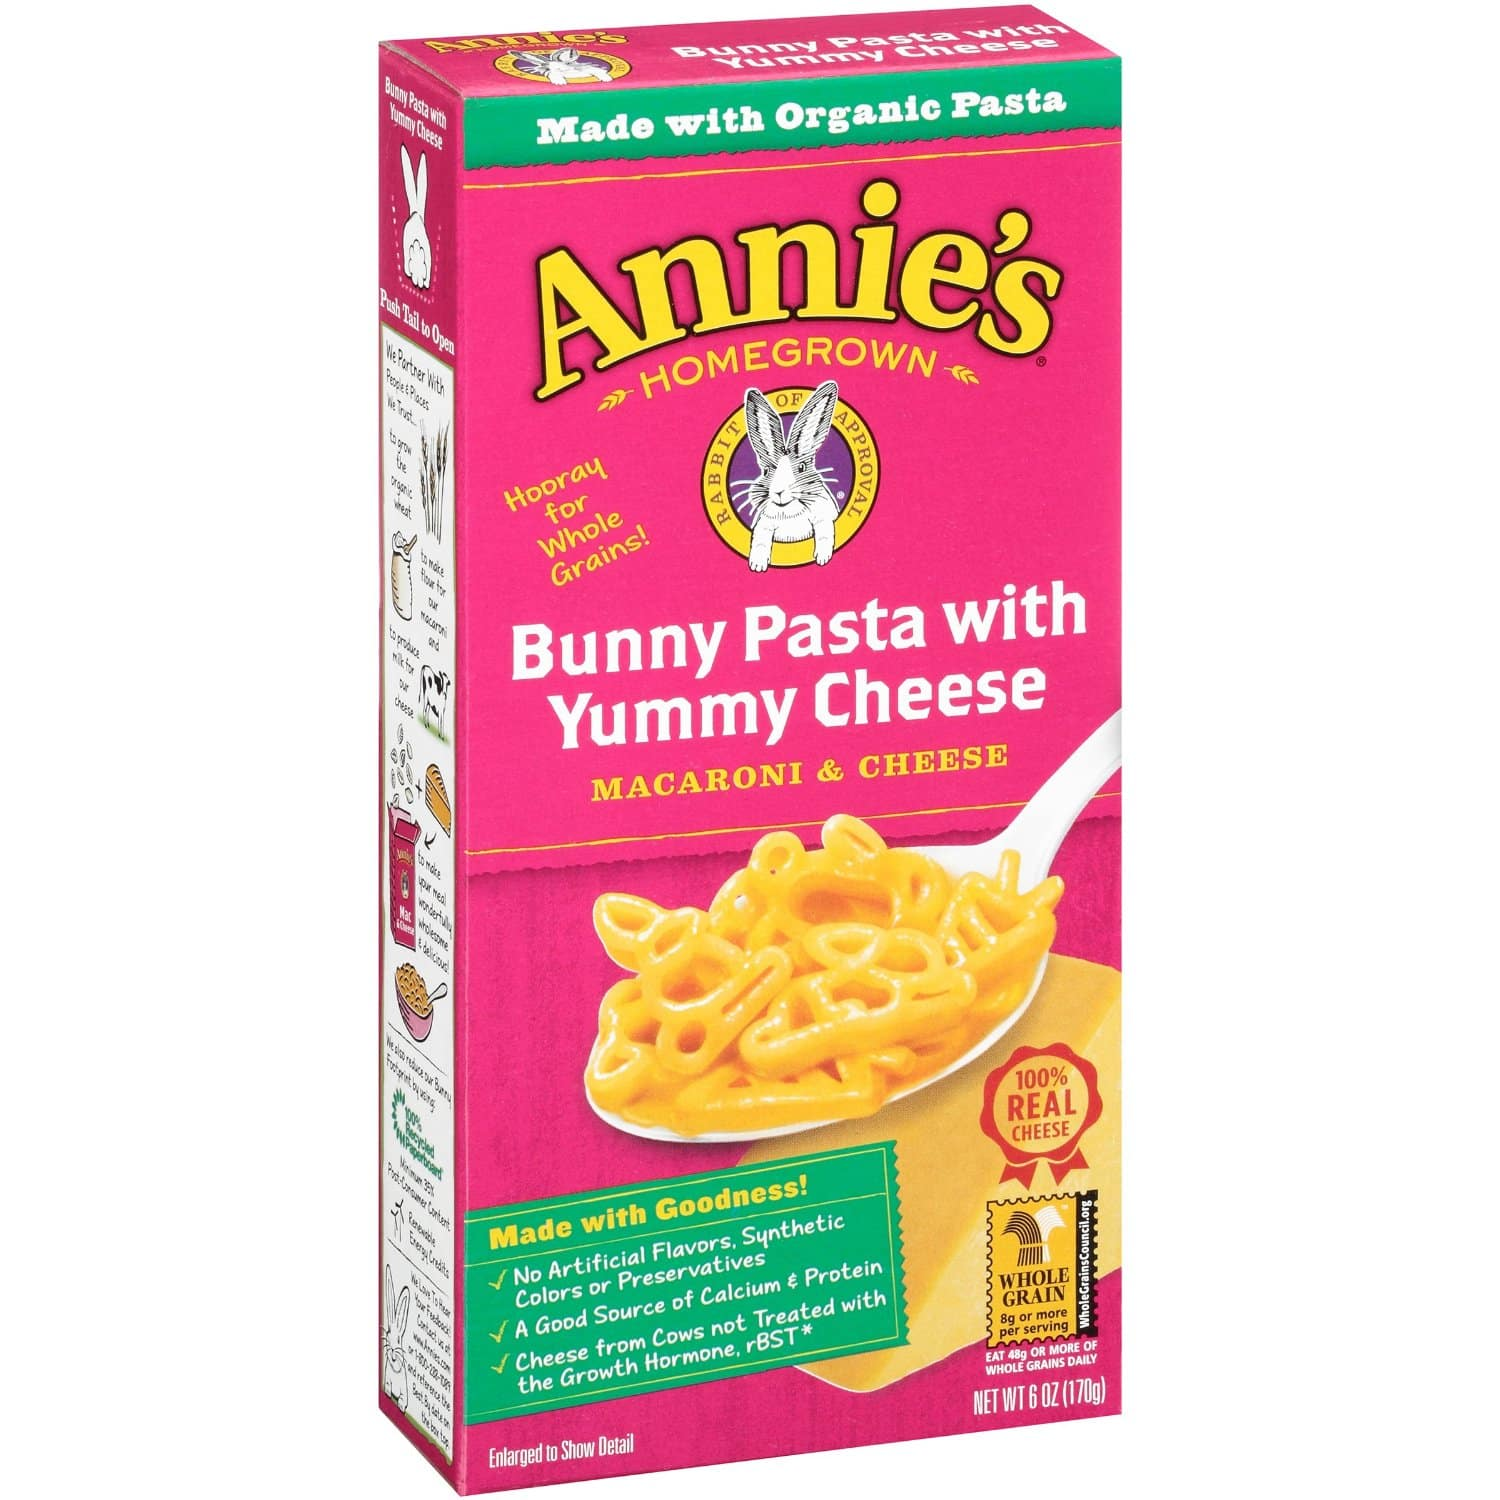 Annie's Bunny Pasta with Yummy Cheese Macaroni & Cheese 6 oz. Box (Pack of 12) $8.32